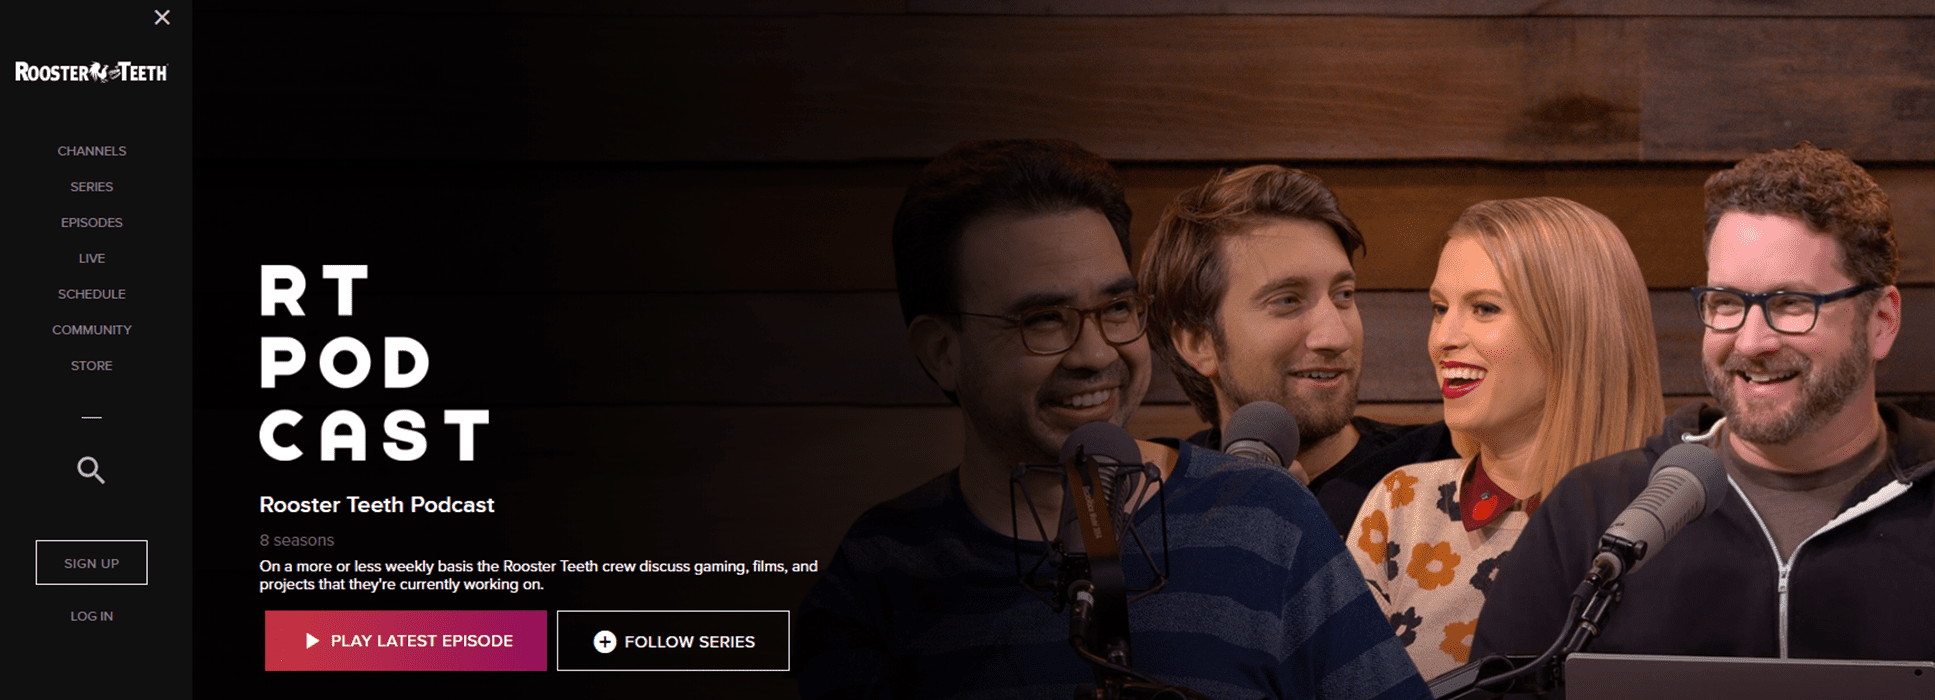 Screenshot from the Rooster Teeth podcast website.